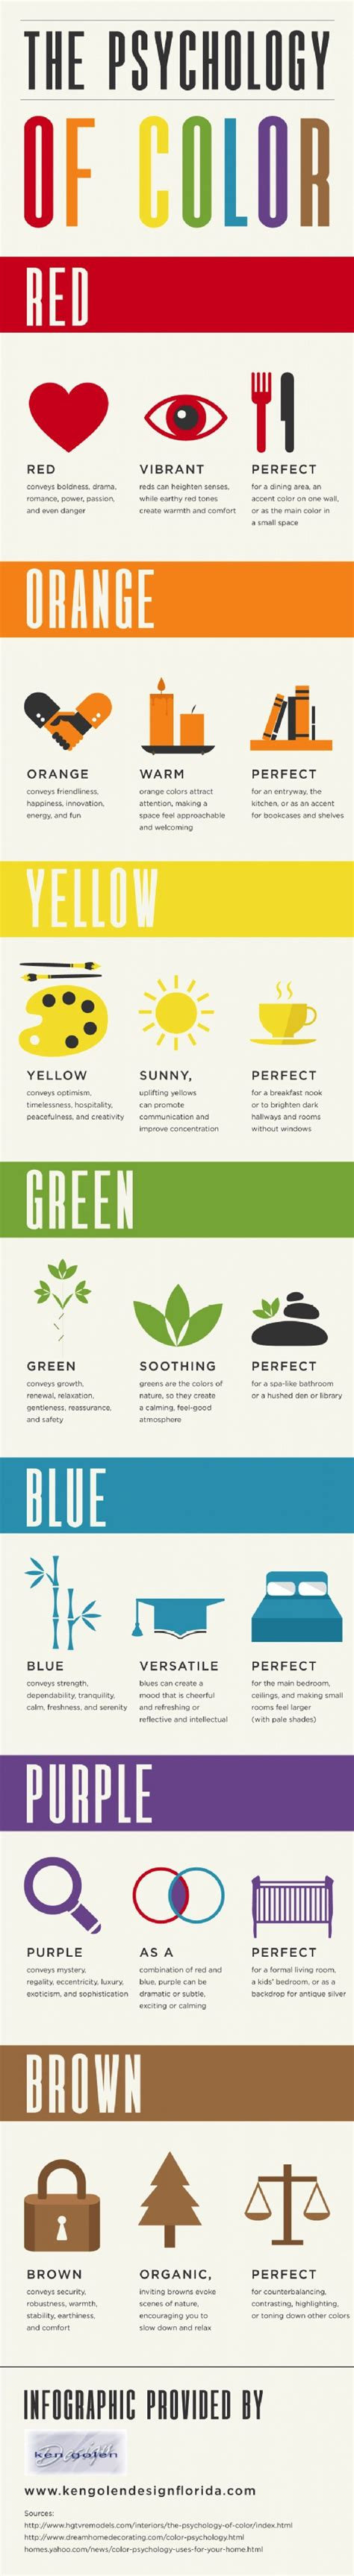 interior paint color psychology infographic the psycology of colour